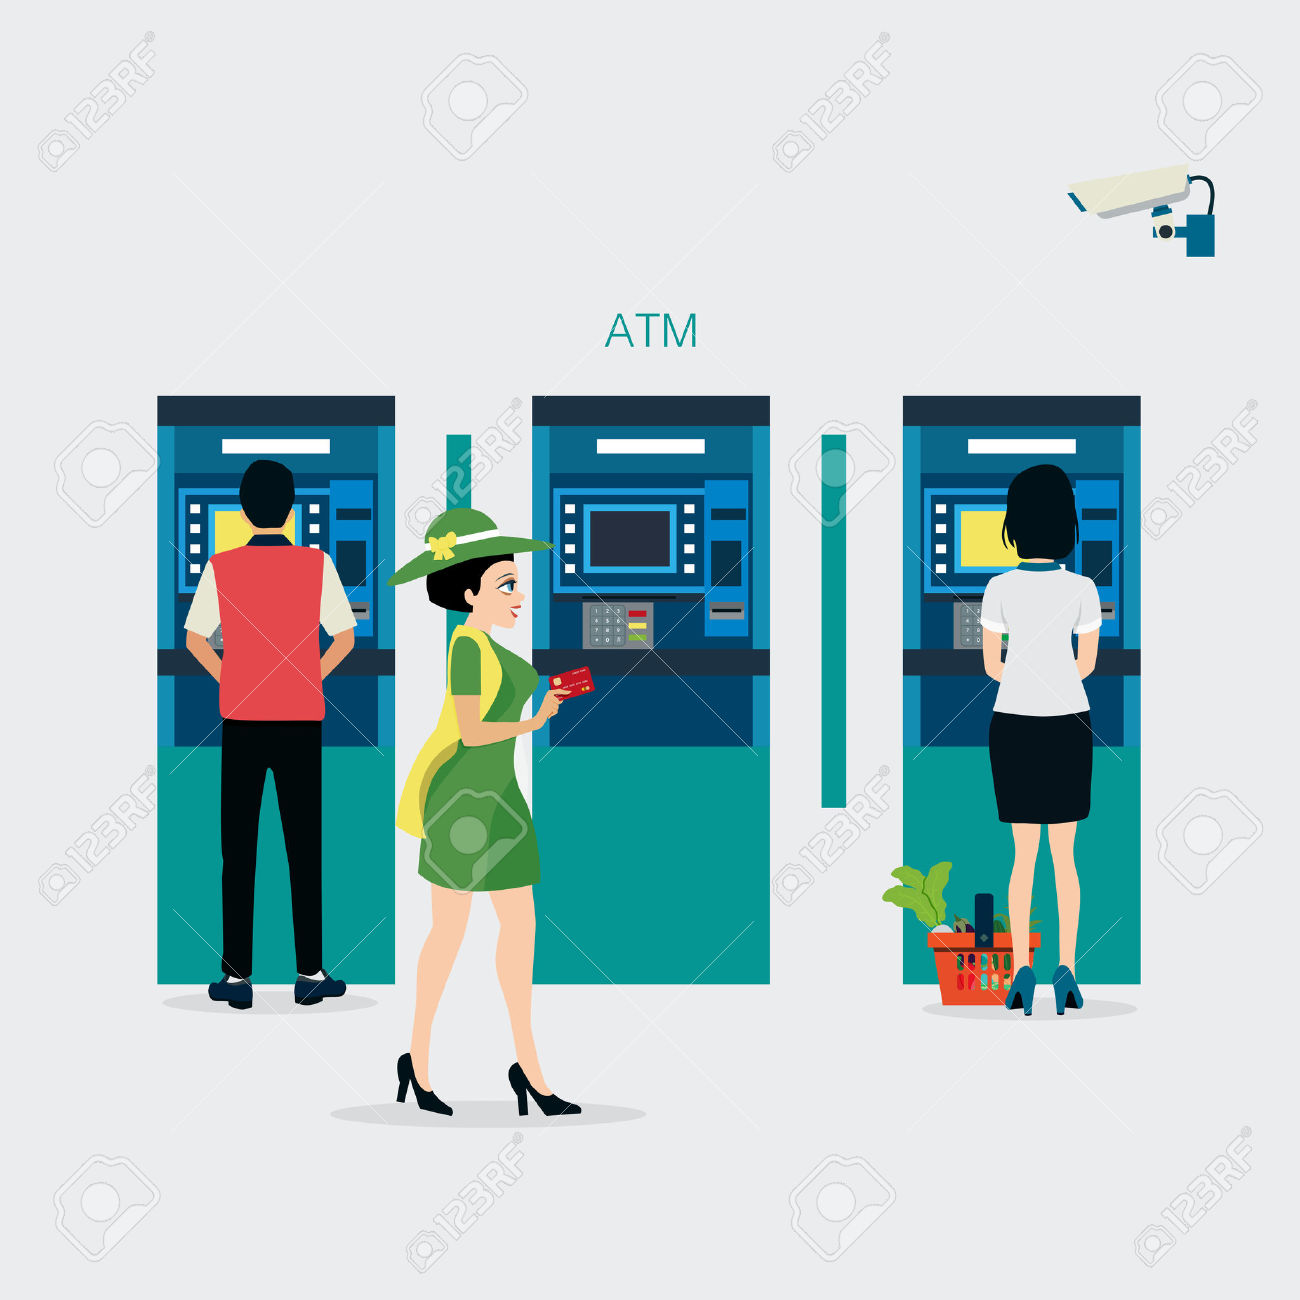 Women Bring A Credit Card To Withdraw Money At ATM With Security.